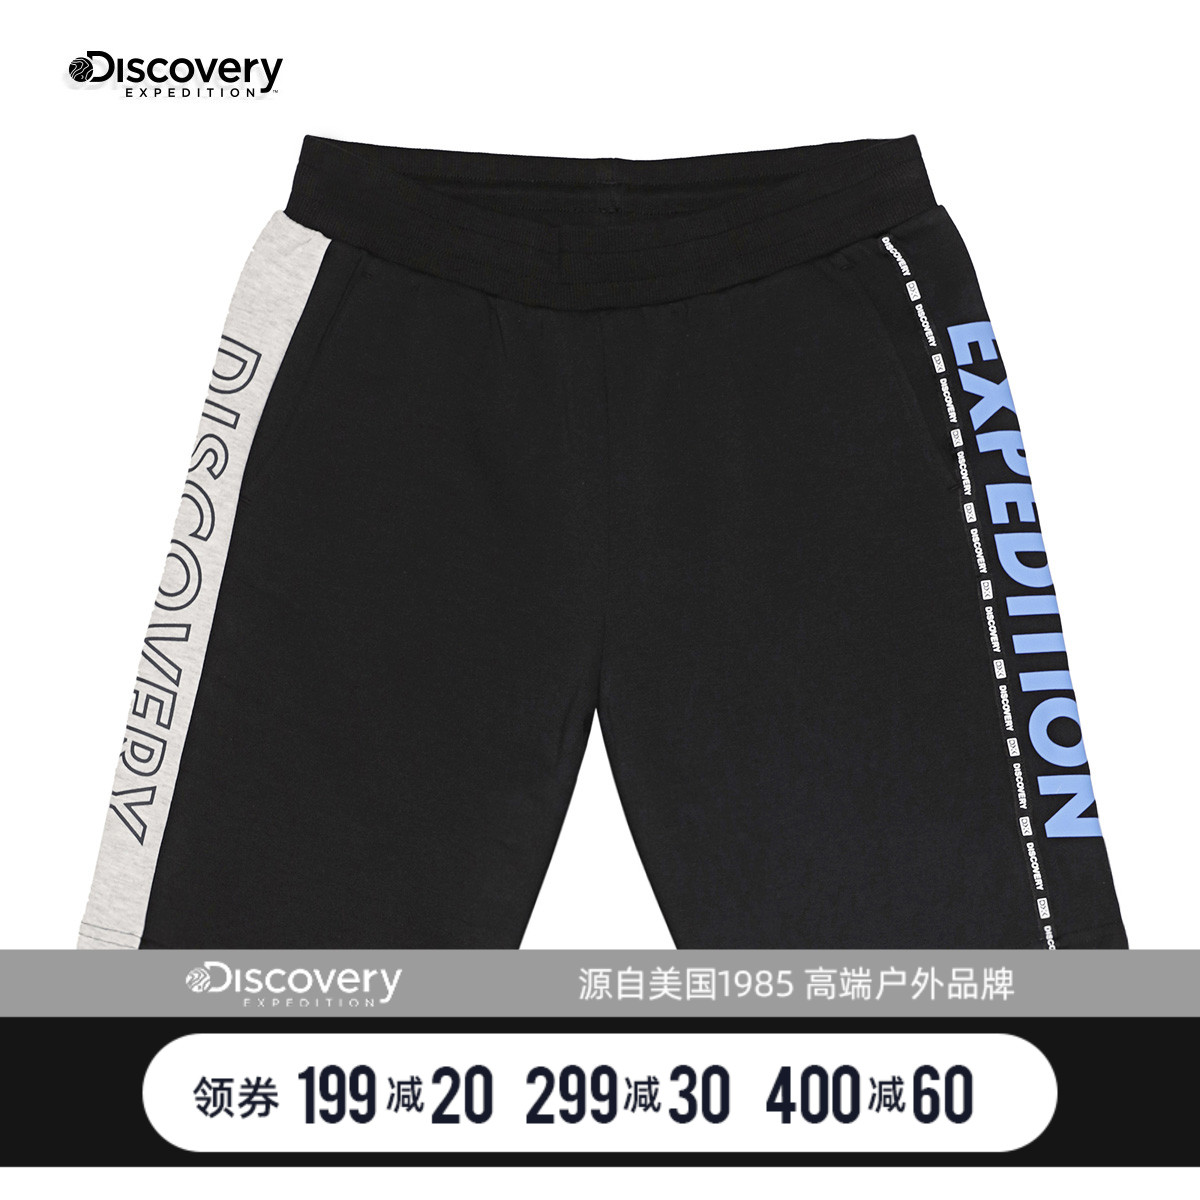 Discovery Channel outdoor spring / summer 2020 new mens casual trend pants shorts